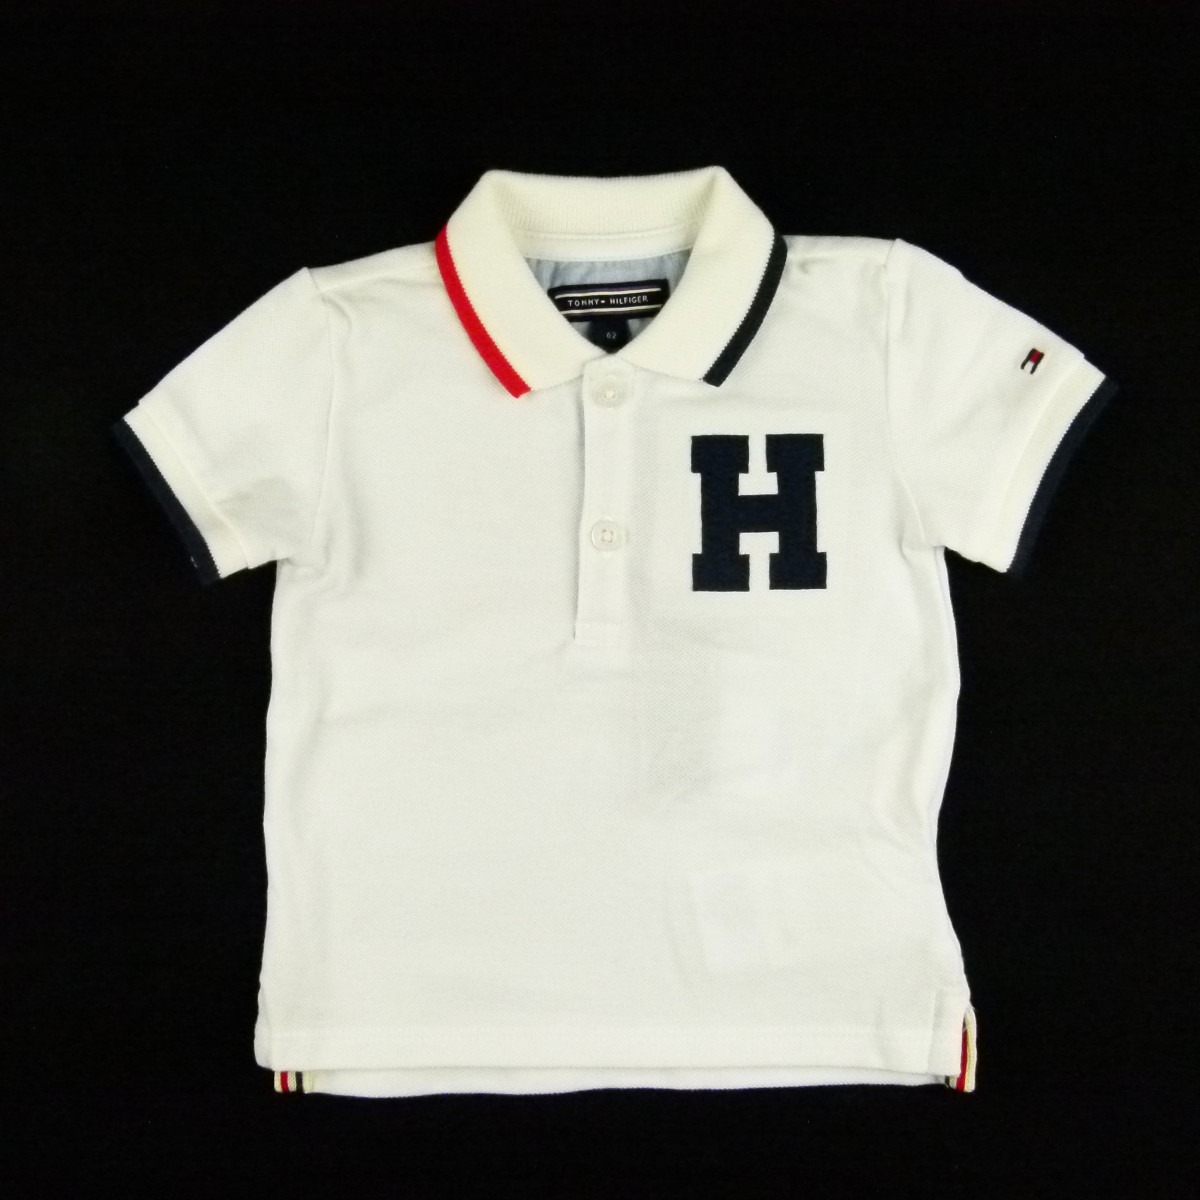 fa964af4b Camiseta Badge Baby Boy Polo Tommy Hilfiger - 033914 Branco